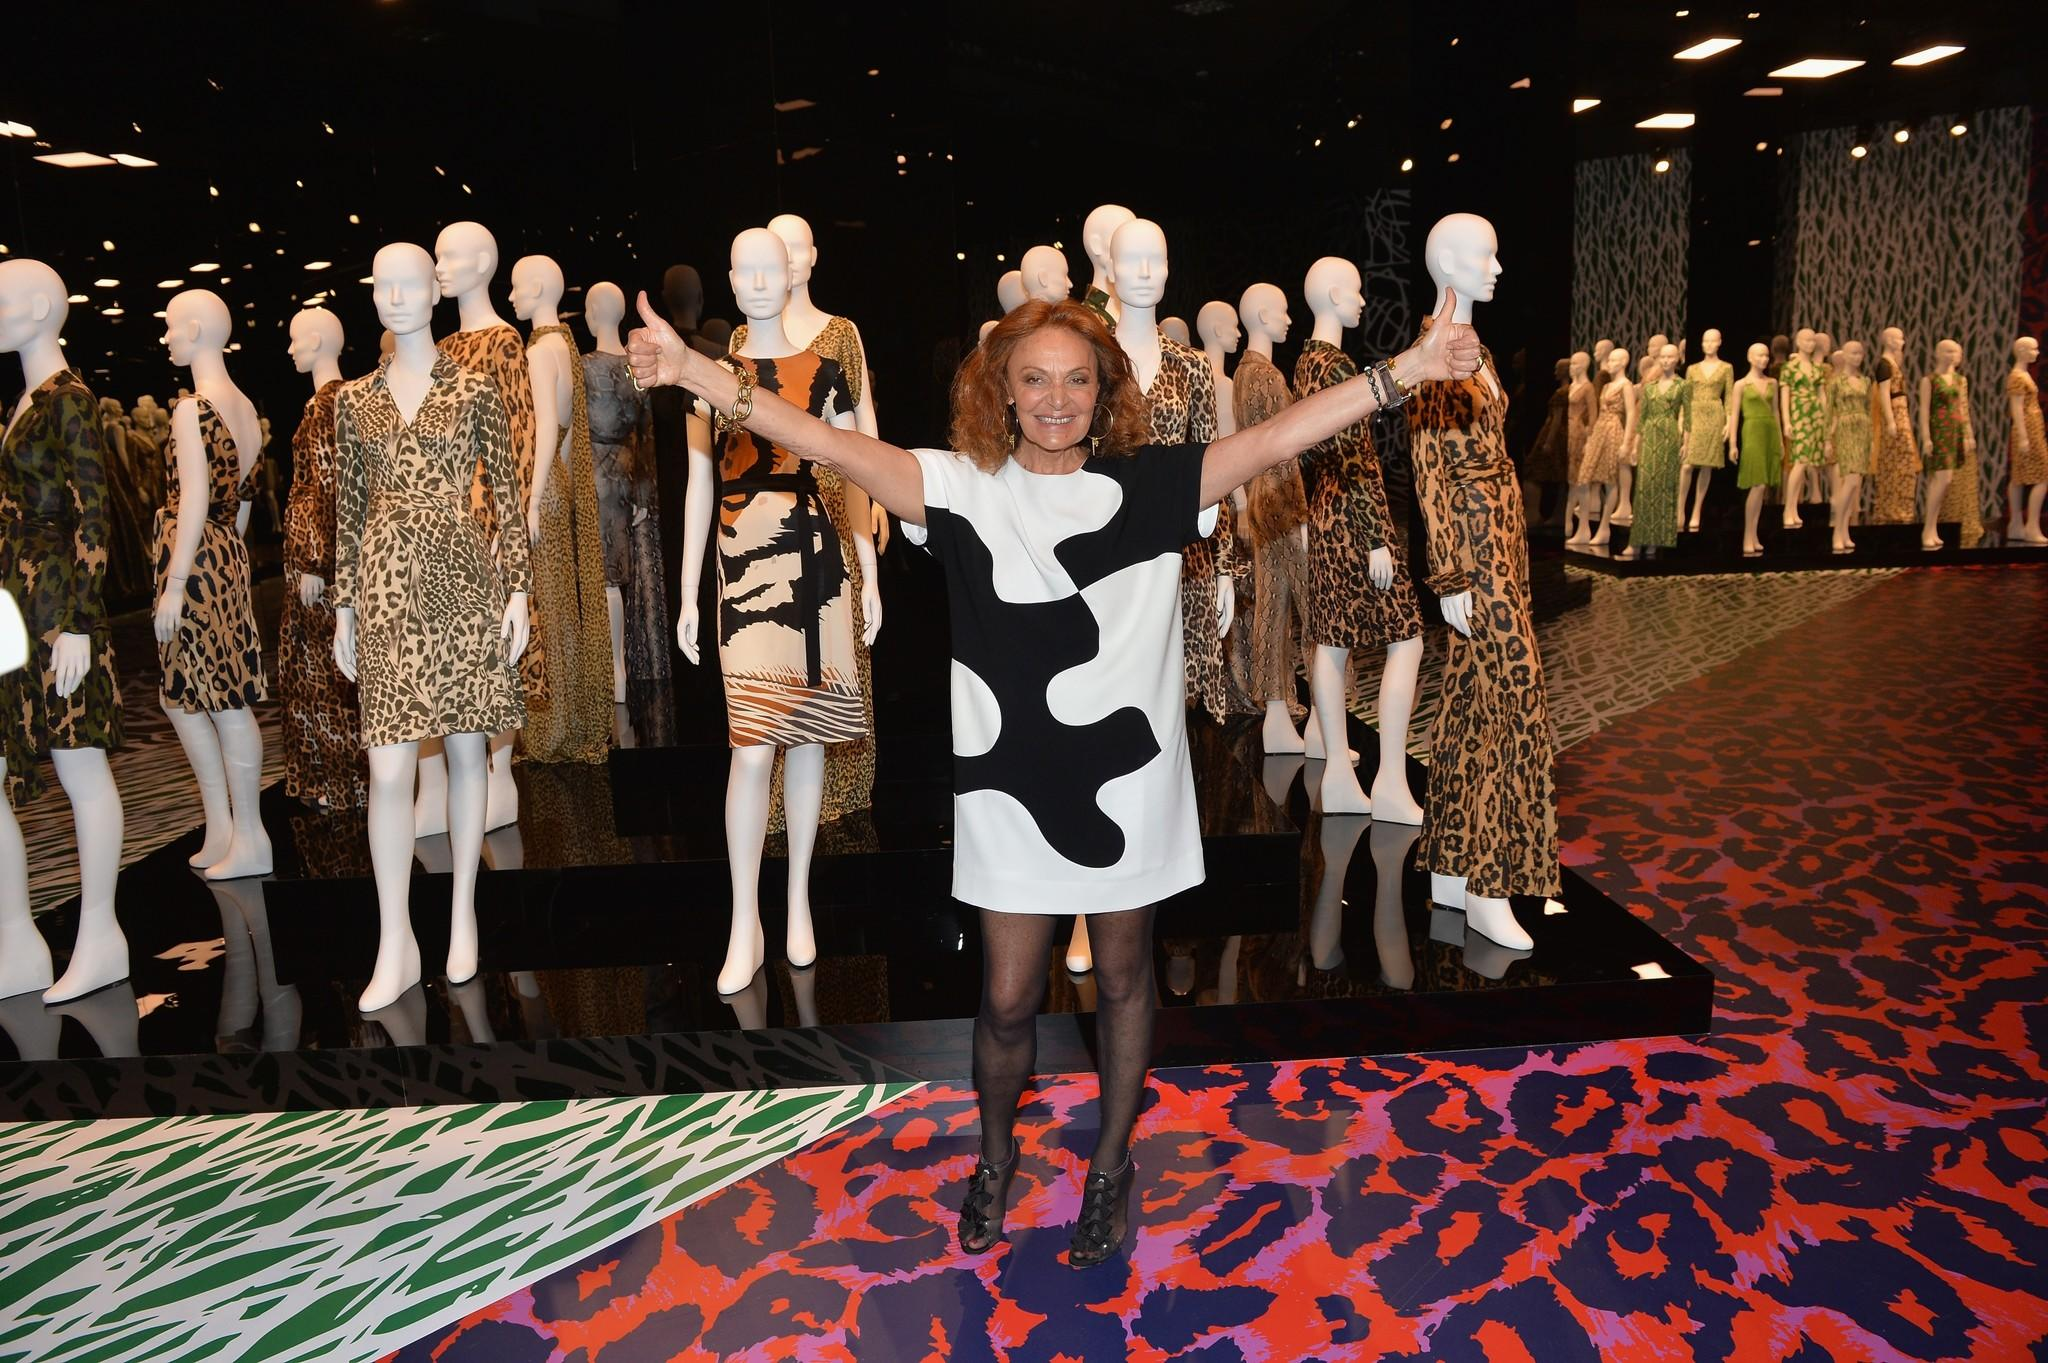 Designer Diane von Furstenberg with a collection of her wrap dress designs.